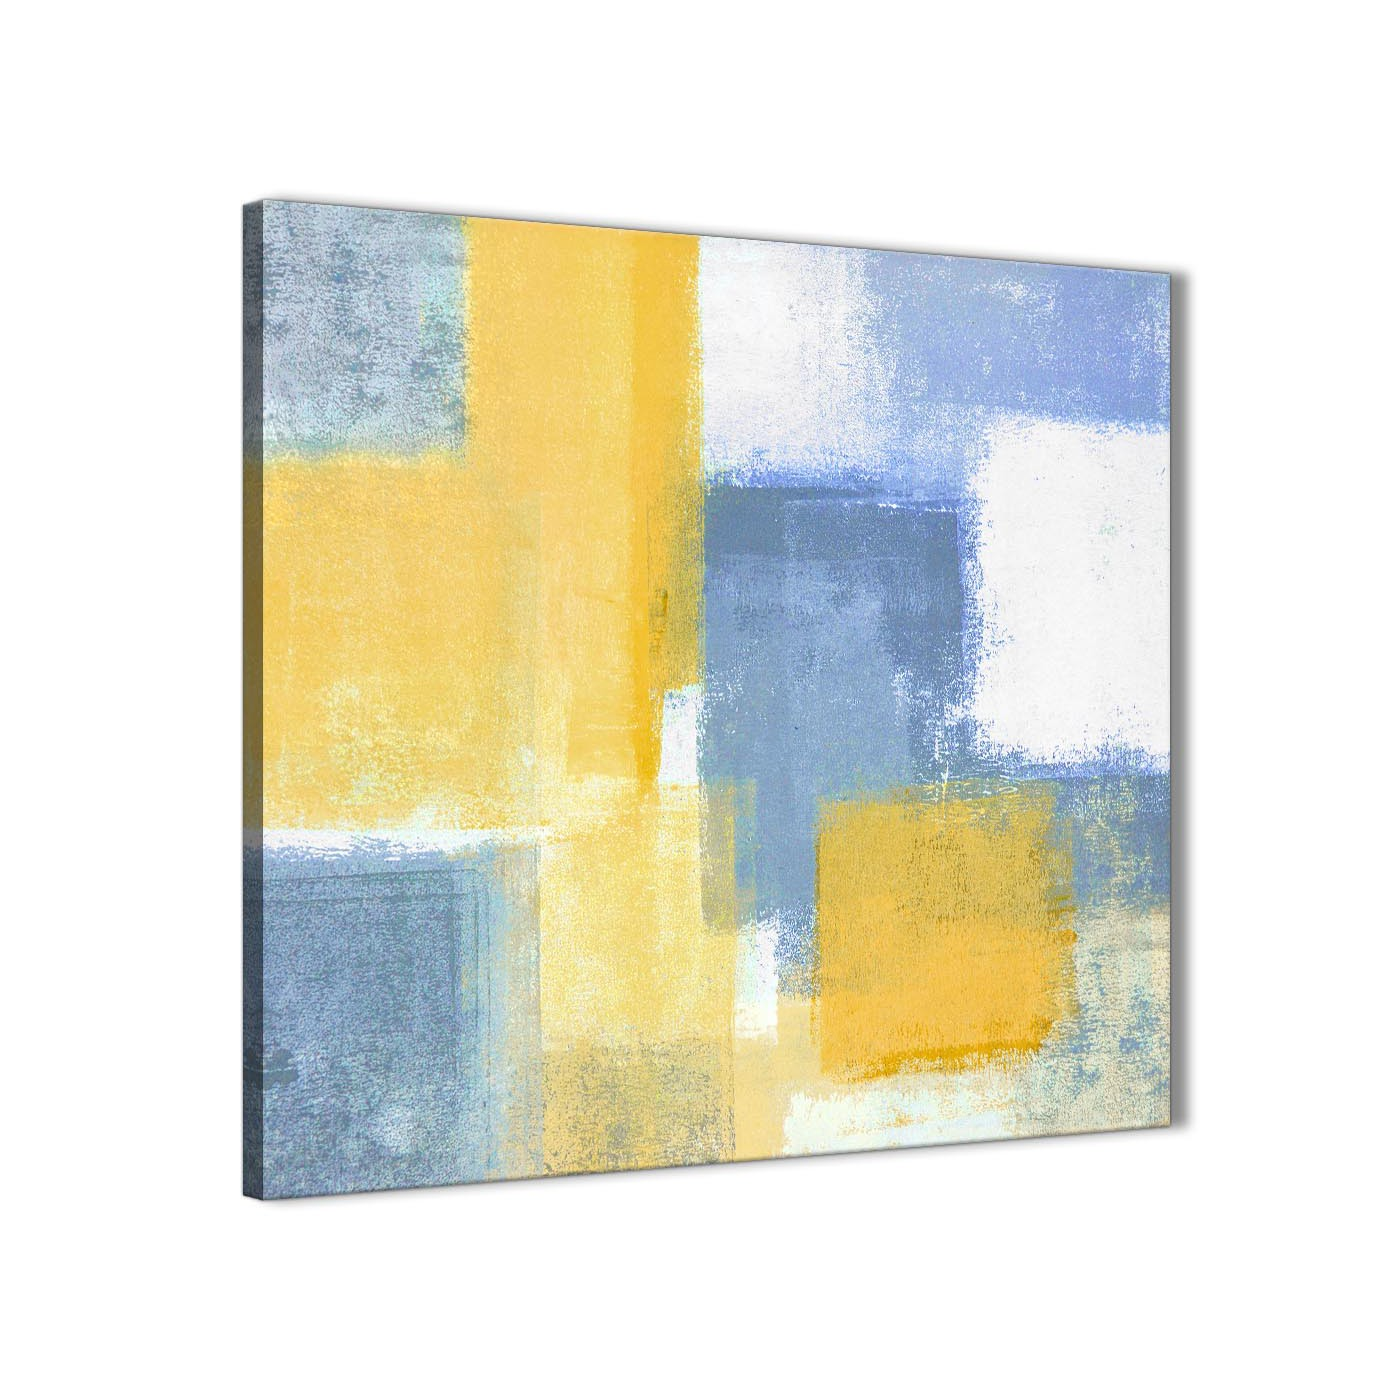 Mustard Yellow Blue Abstract Bedroom Canvas Wall Art Decor 1s371l 79cm Square Print